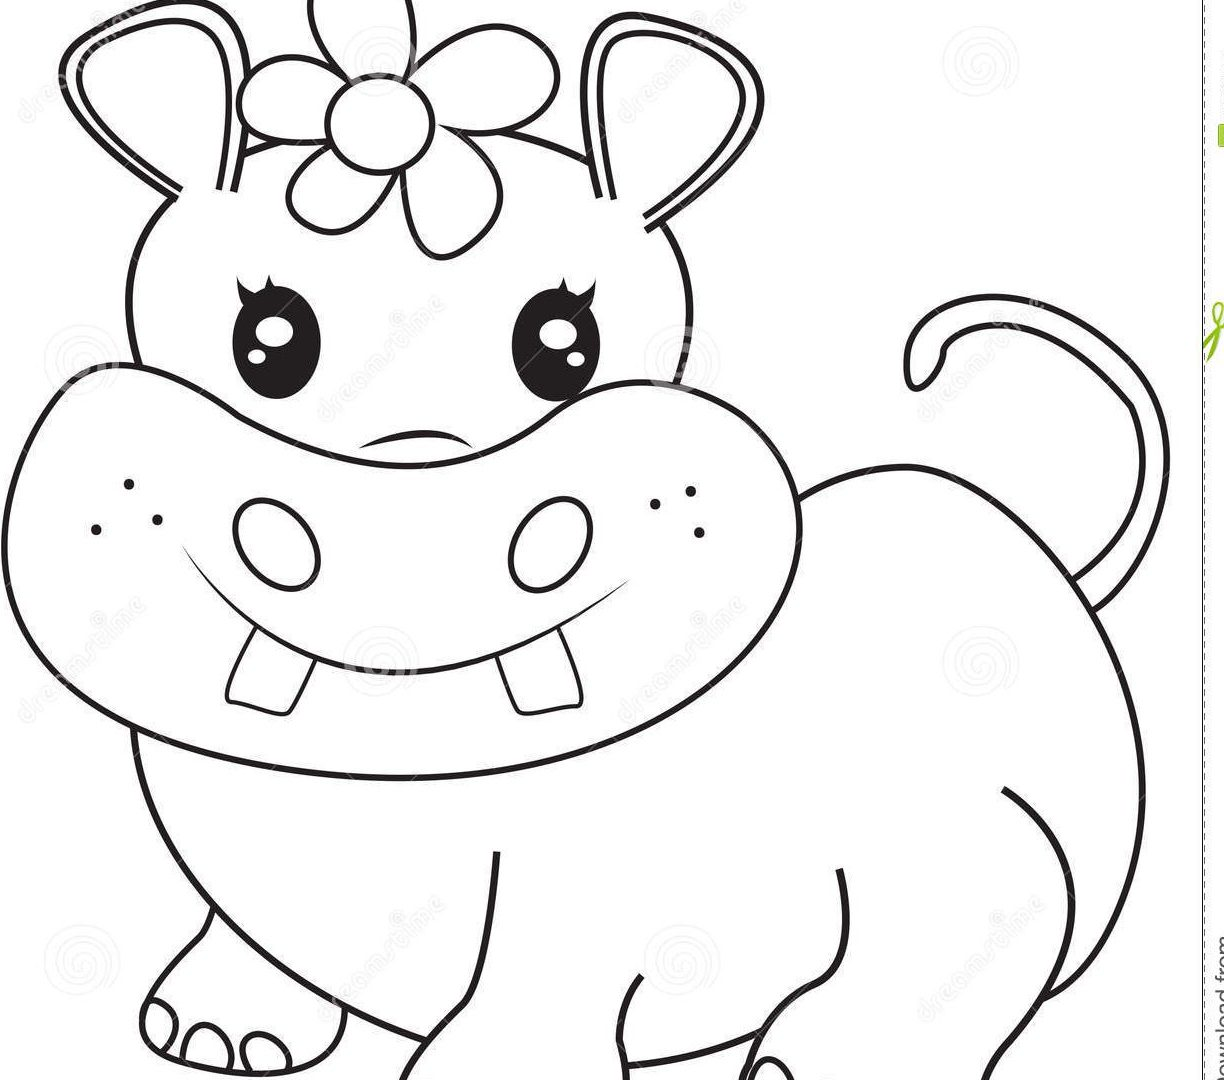 1224x1080 Heather Chavez Hippo Coloring Pages For Kids To Print Harry Potter